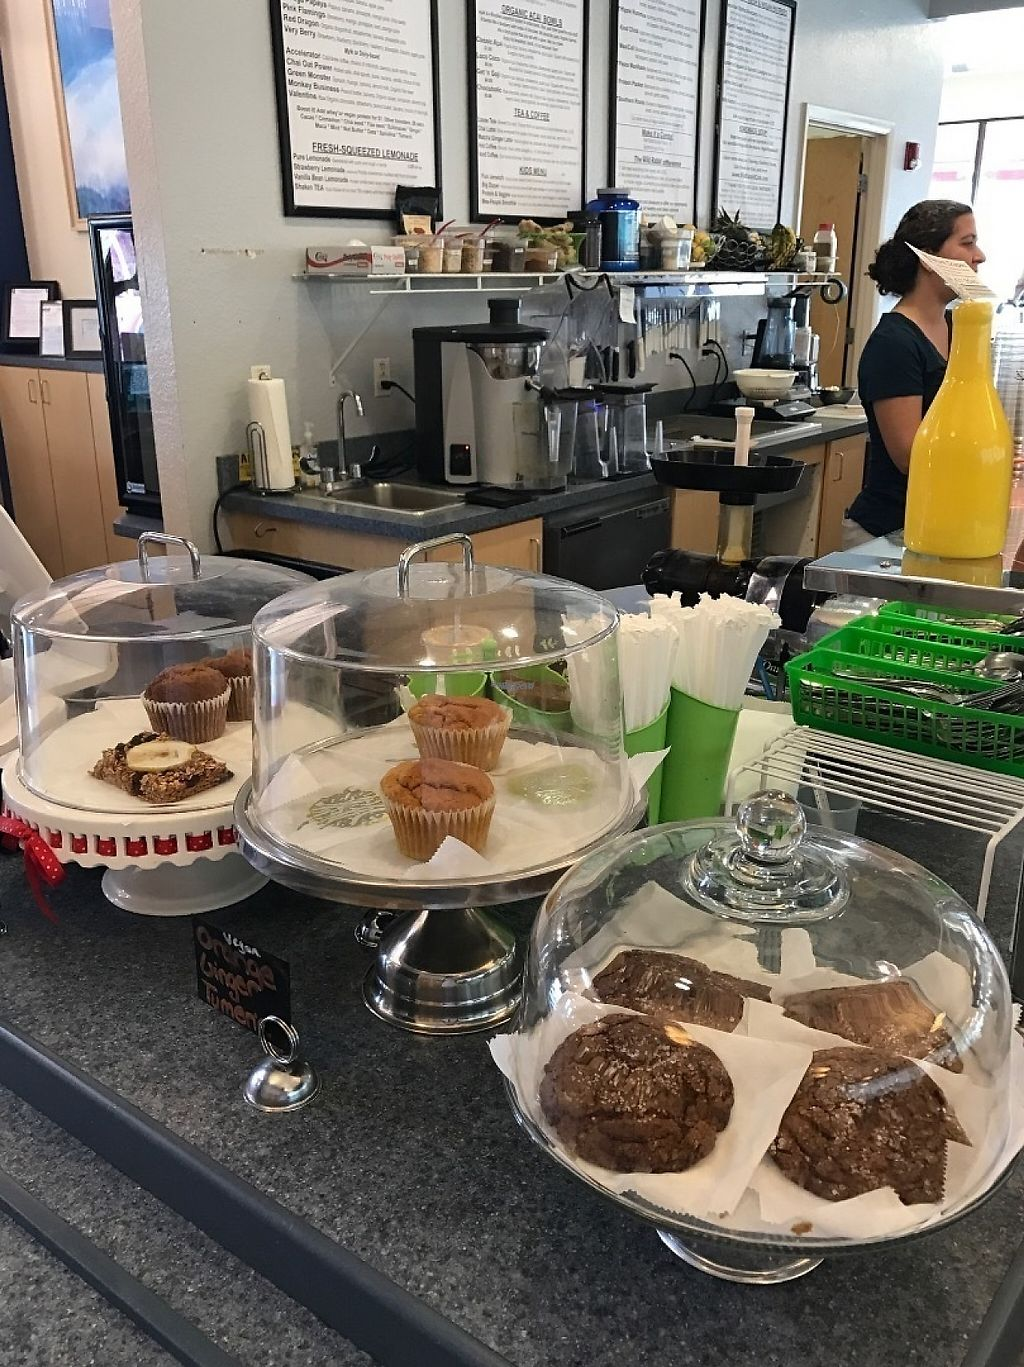 """Photo of Wild Rabbit Cafe and Health Bar  by <a href=""""/members/profile/DillonAbraham"""">DillonAbraham</a> <br/>Wonderfully ever-changing seasonal bar. Baked goods and produce.  <br/> February 14, 2017  - <a href='/contact/abuse/image/64764/226393'>Report</a>"""